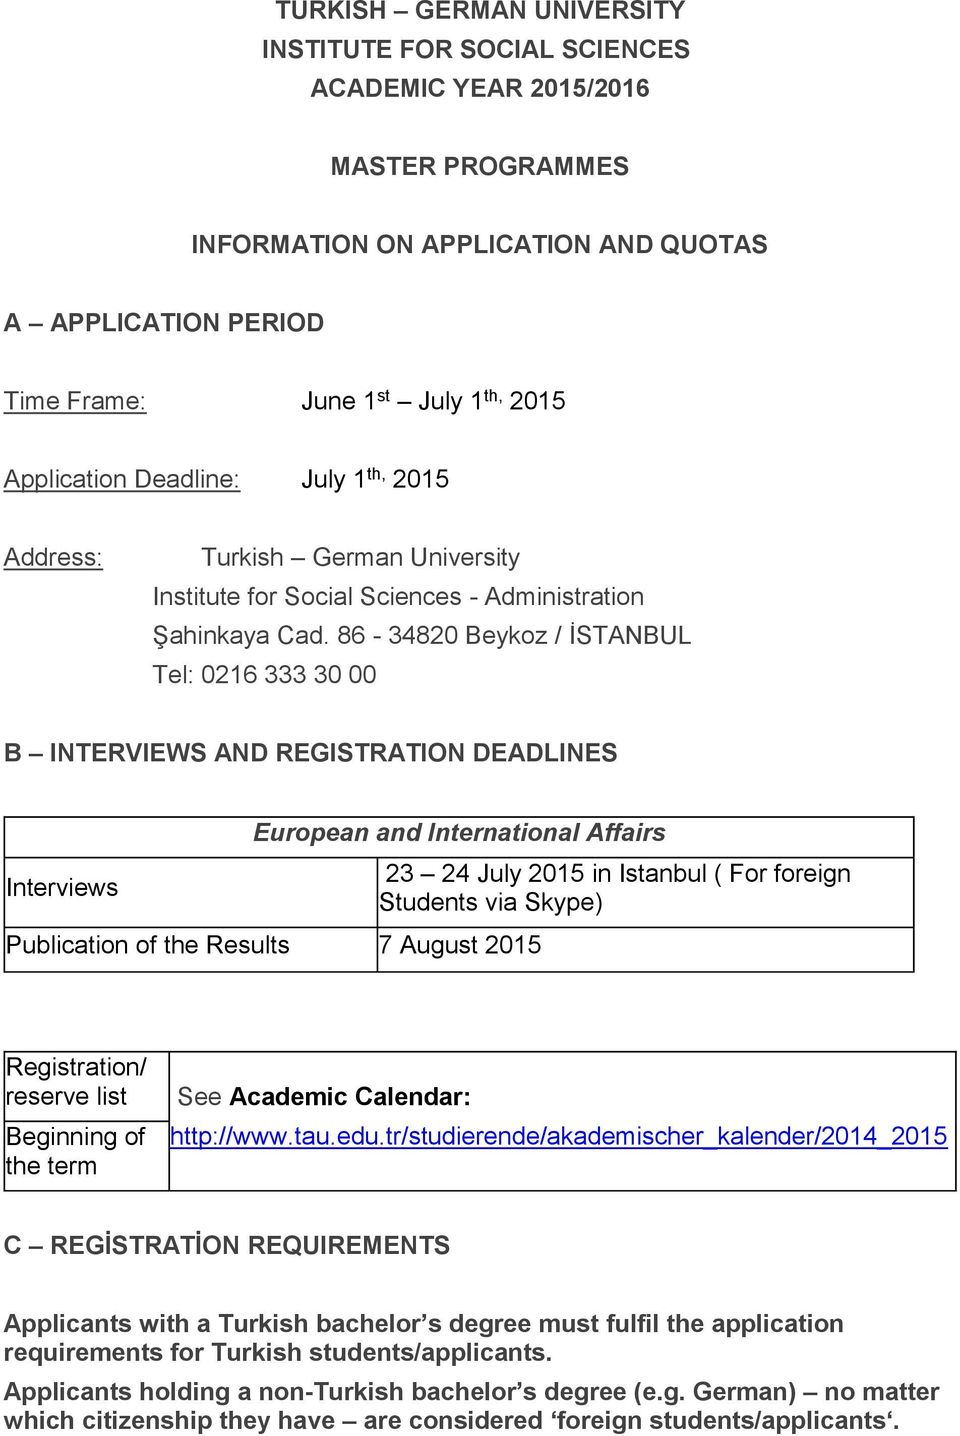 86-34820 Beykoz / İSTANBUL Tel: 0216 333 30 00 B INTERVIEWS AND REGISTRATION DEADLINES Interviews European and International Affairs Publication of the Results 7 August 2015 23 24 July 2015 in